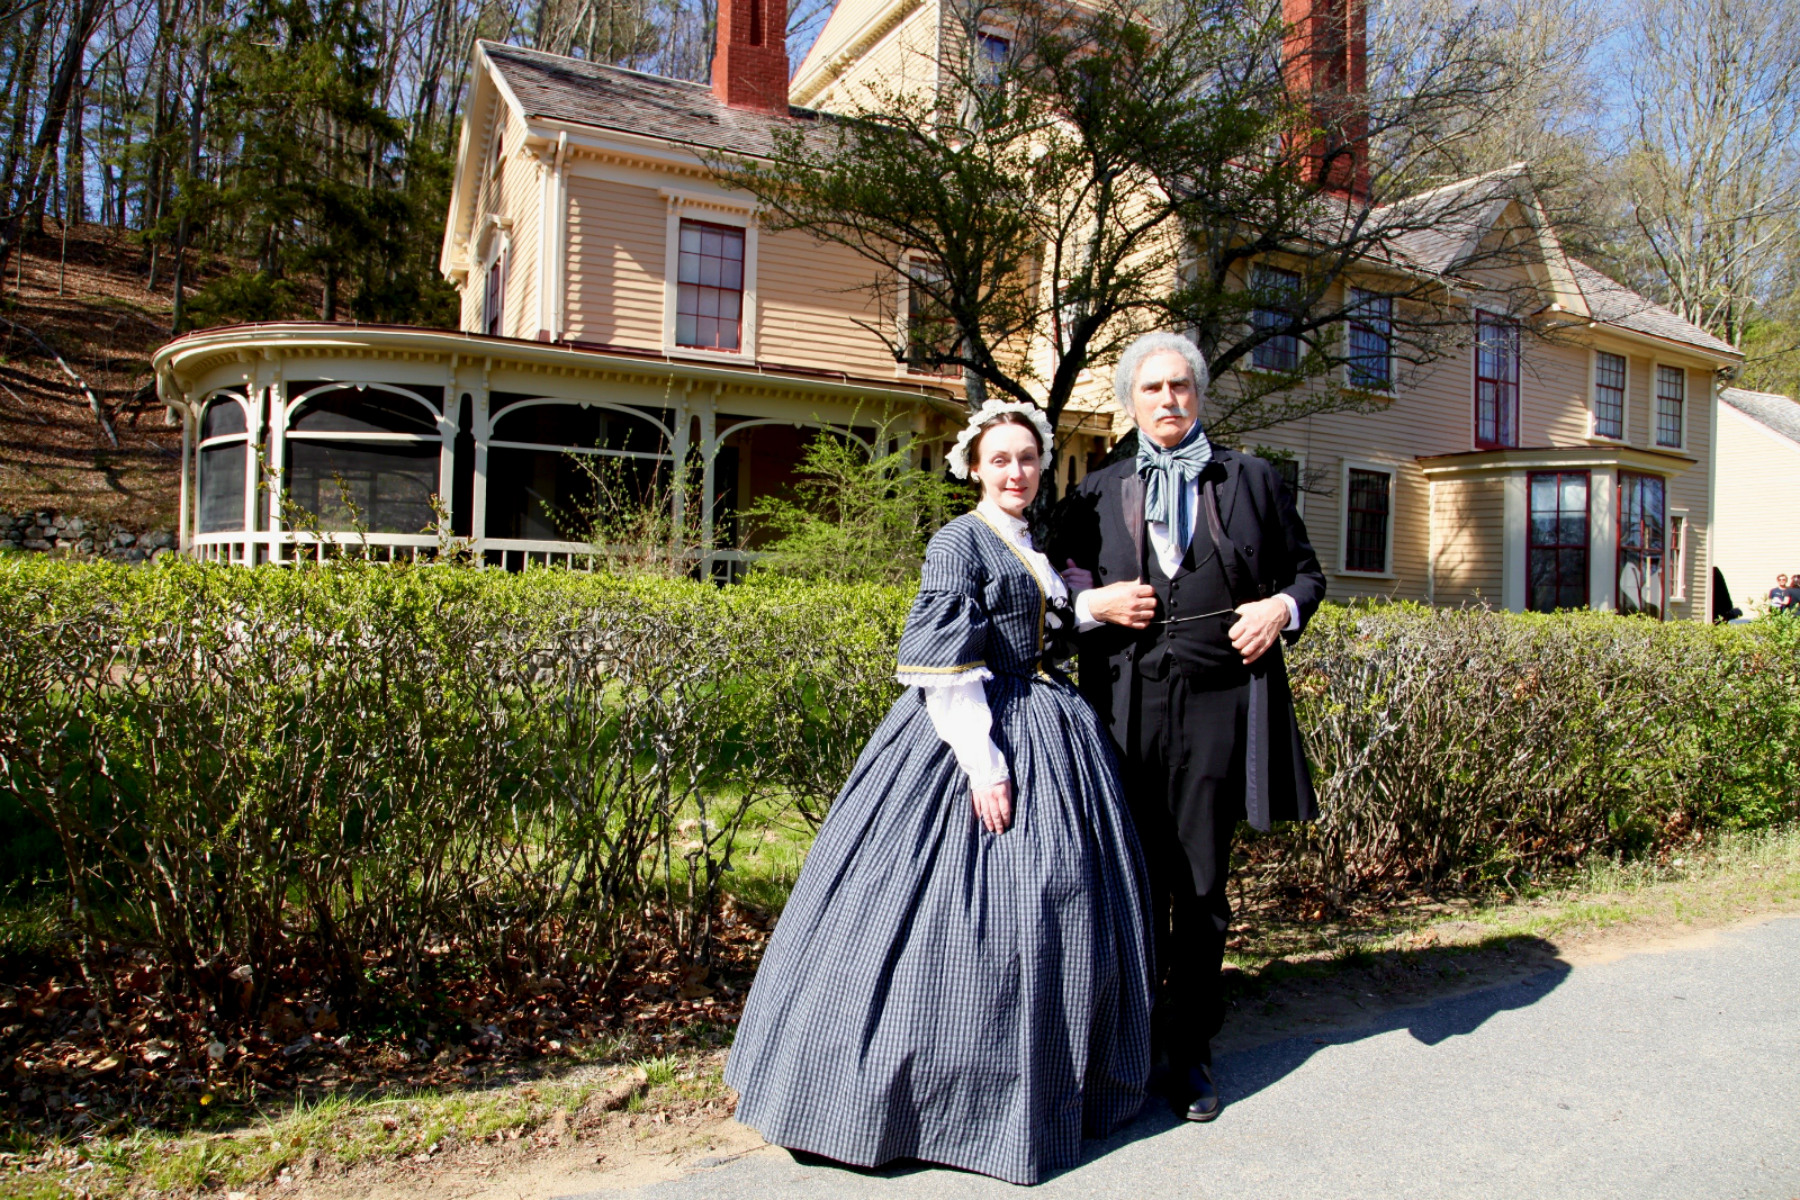 Sophia and Nathaniel Hawthorne welcome you to The Wayside